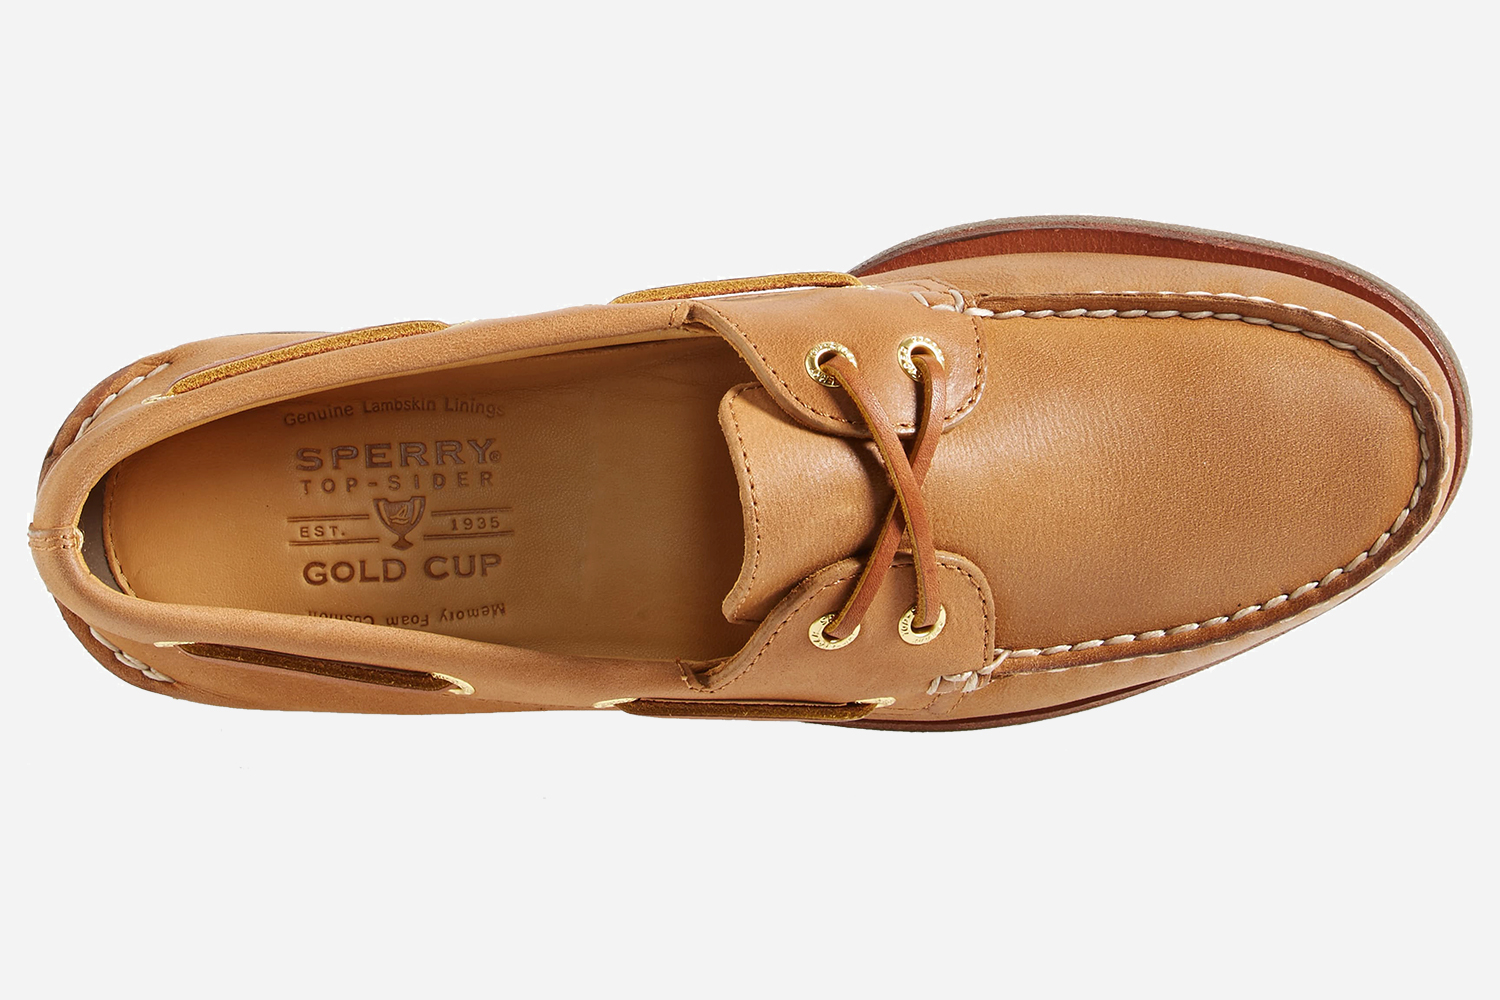 Deal: The Quintessential Boat Shoe Is Over $50 Off